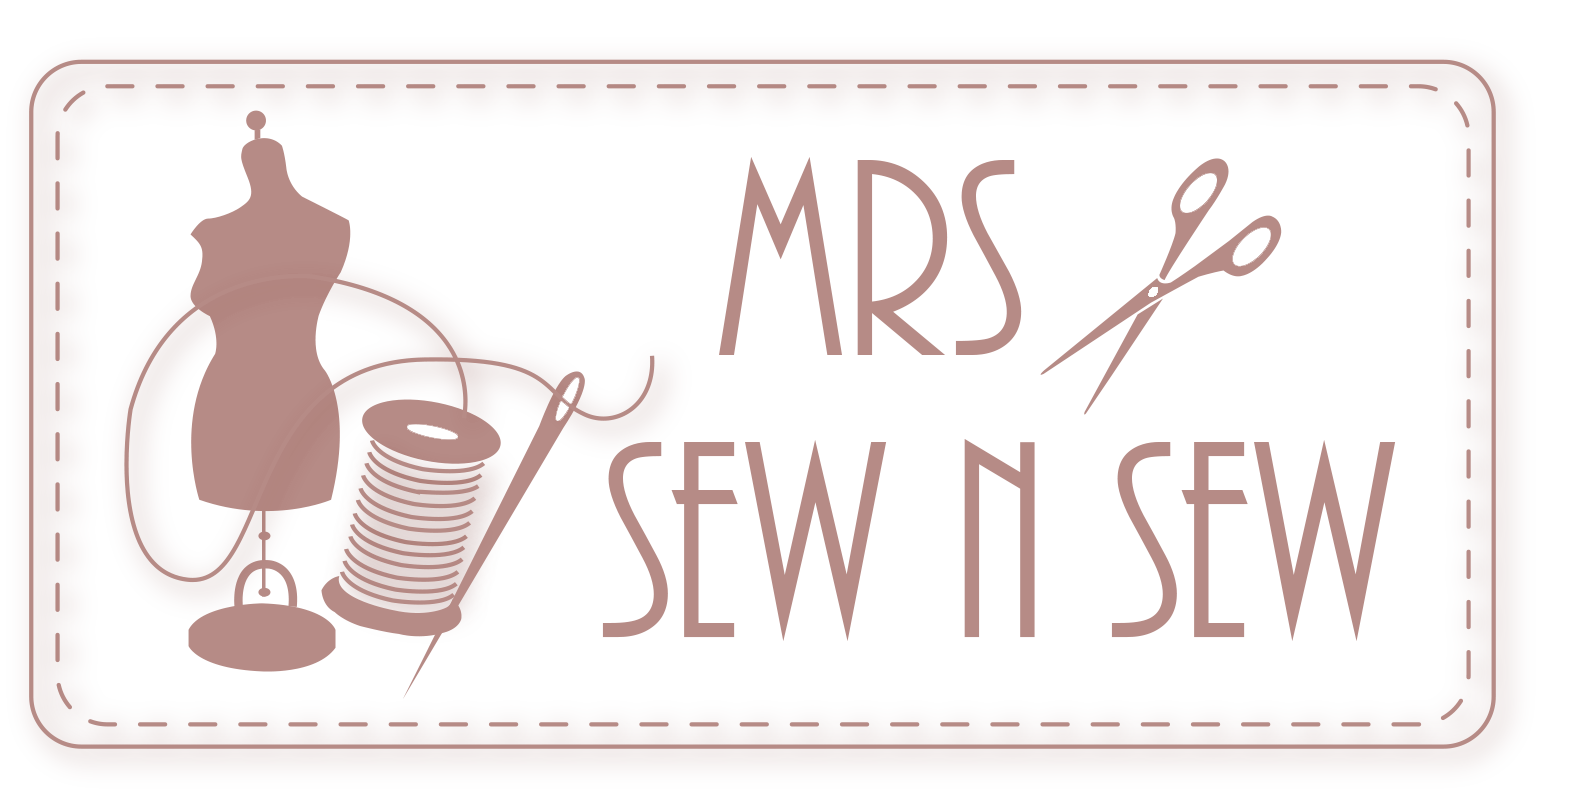 Mrs sew n northampton. Sewing clipart clothing textile